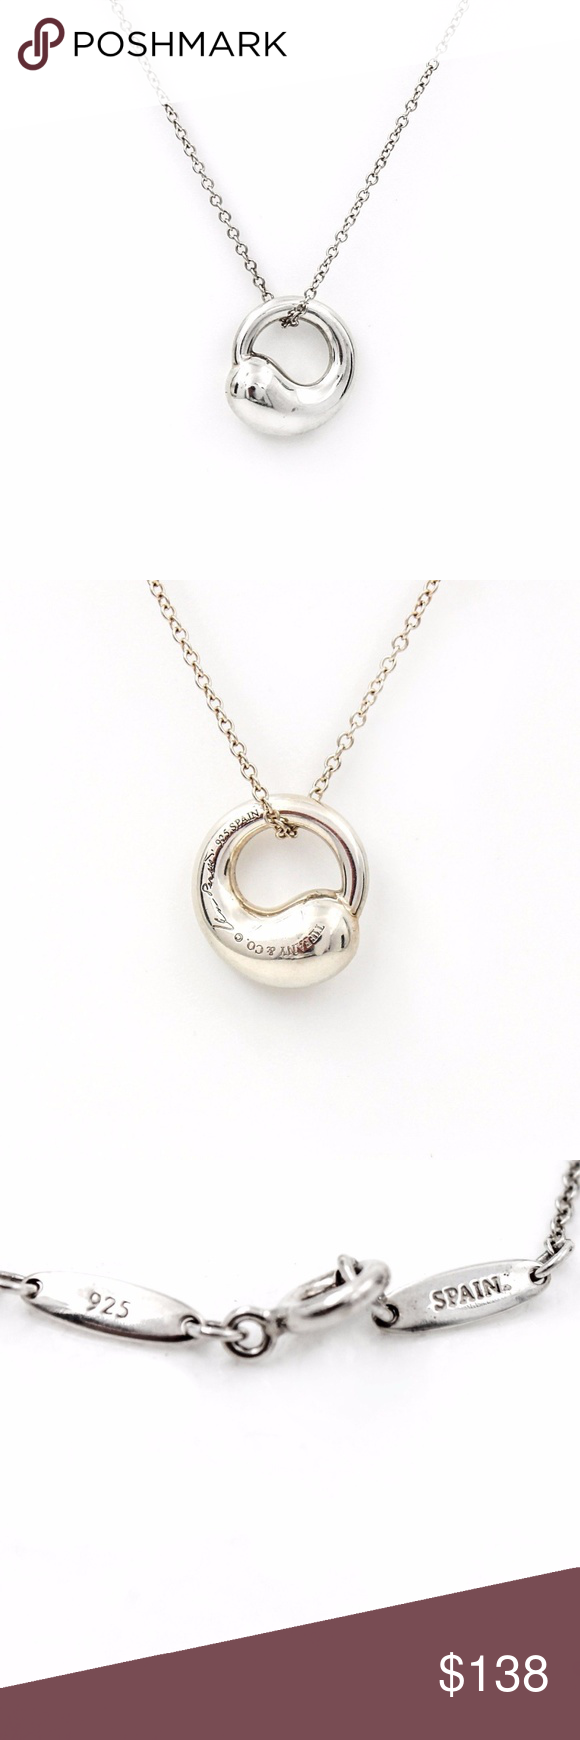 Tiffany co elsa peretti eternal circle necklace elsa peretti eternal circle necklace tiffany co elsa peretti small eternal circle pendant on chain in sterling silver length 16 guaranteed authentic aloadofball Images